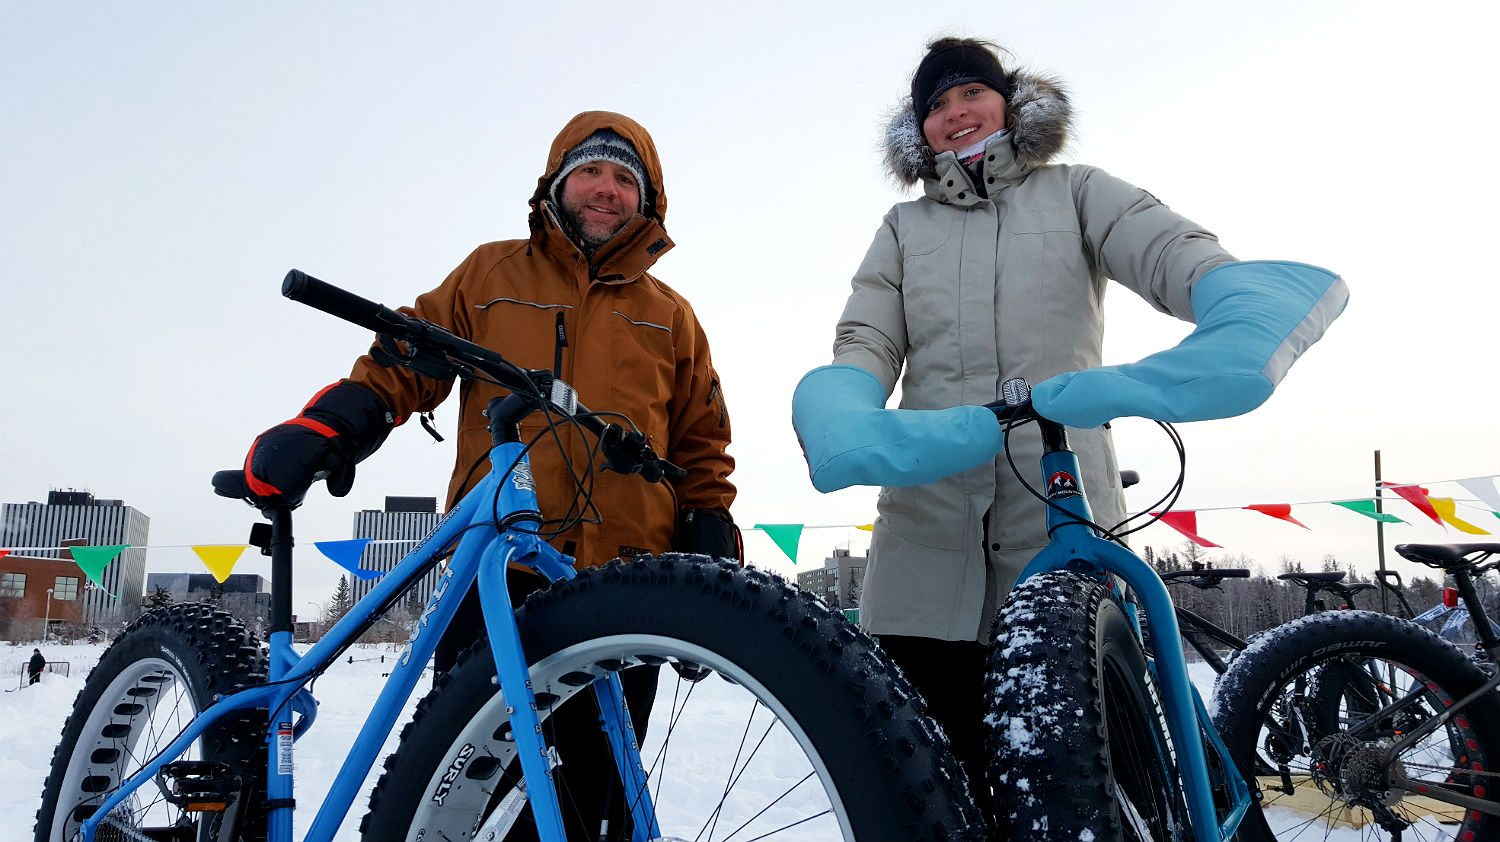 Overlander Sports staff pose with fat bikes during World Snow Day